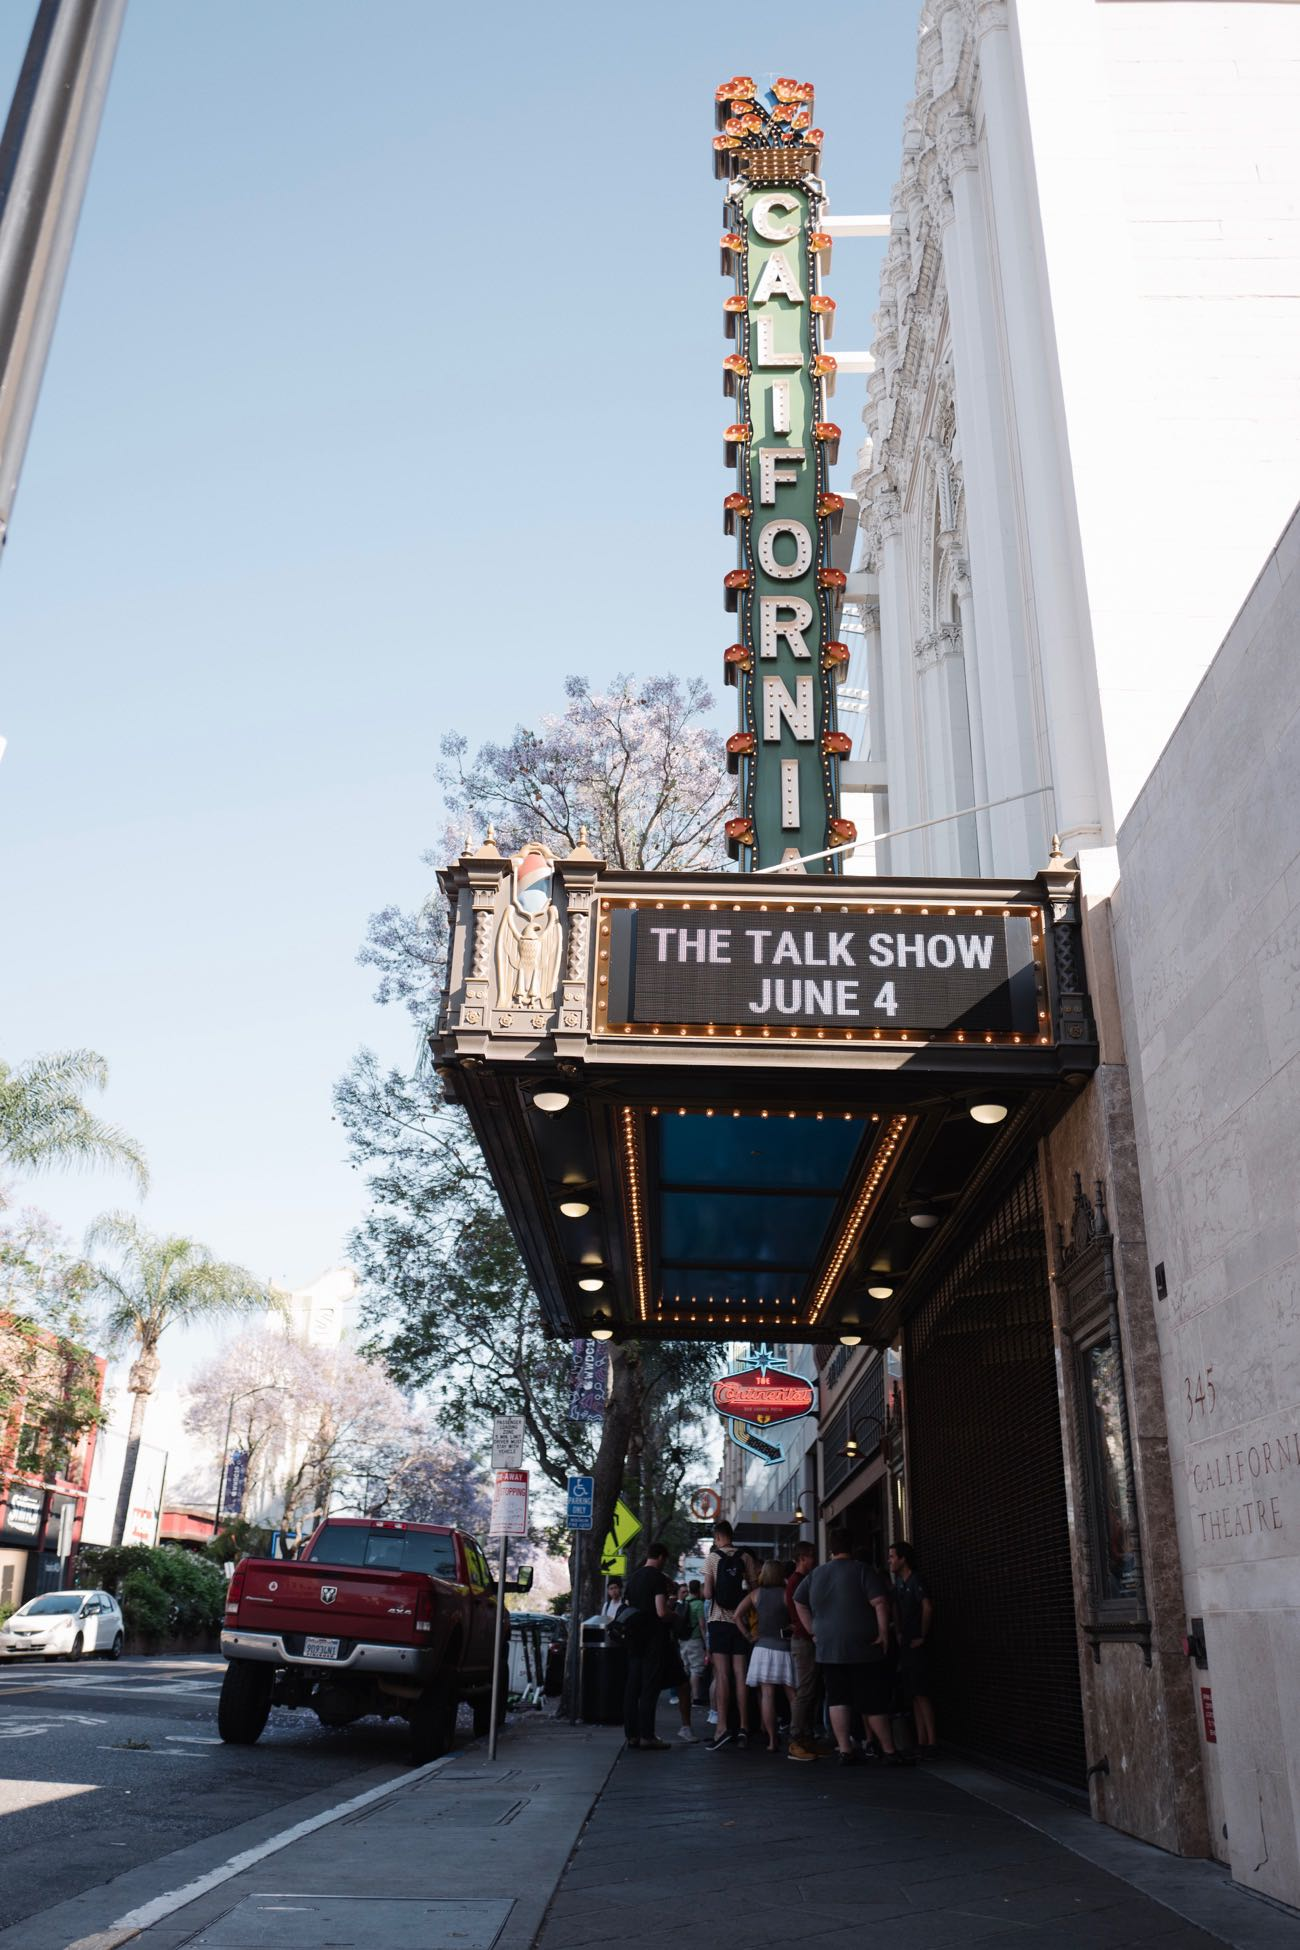 The Talk Show Live at WWDC 2019